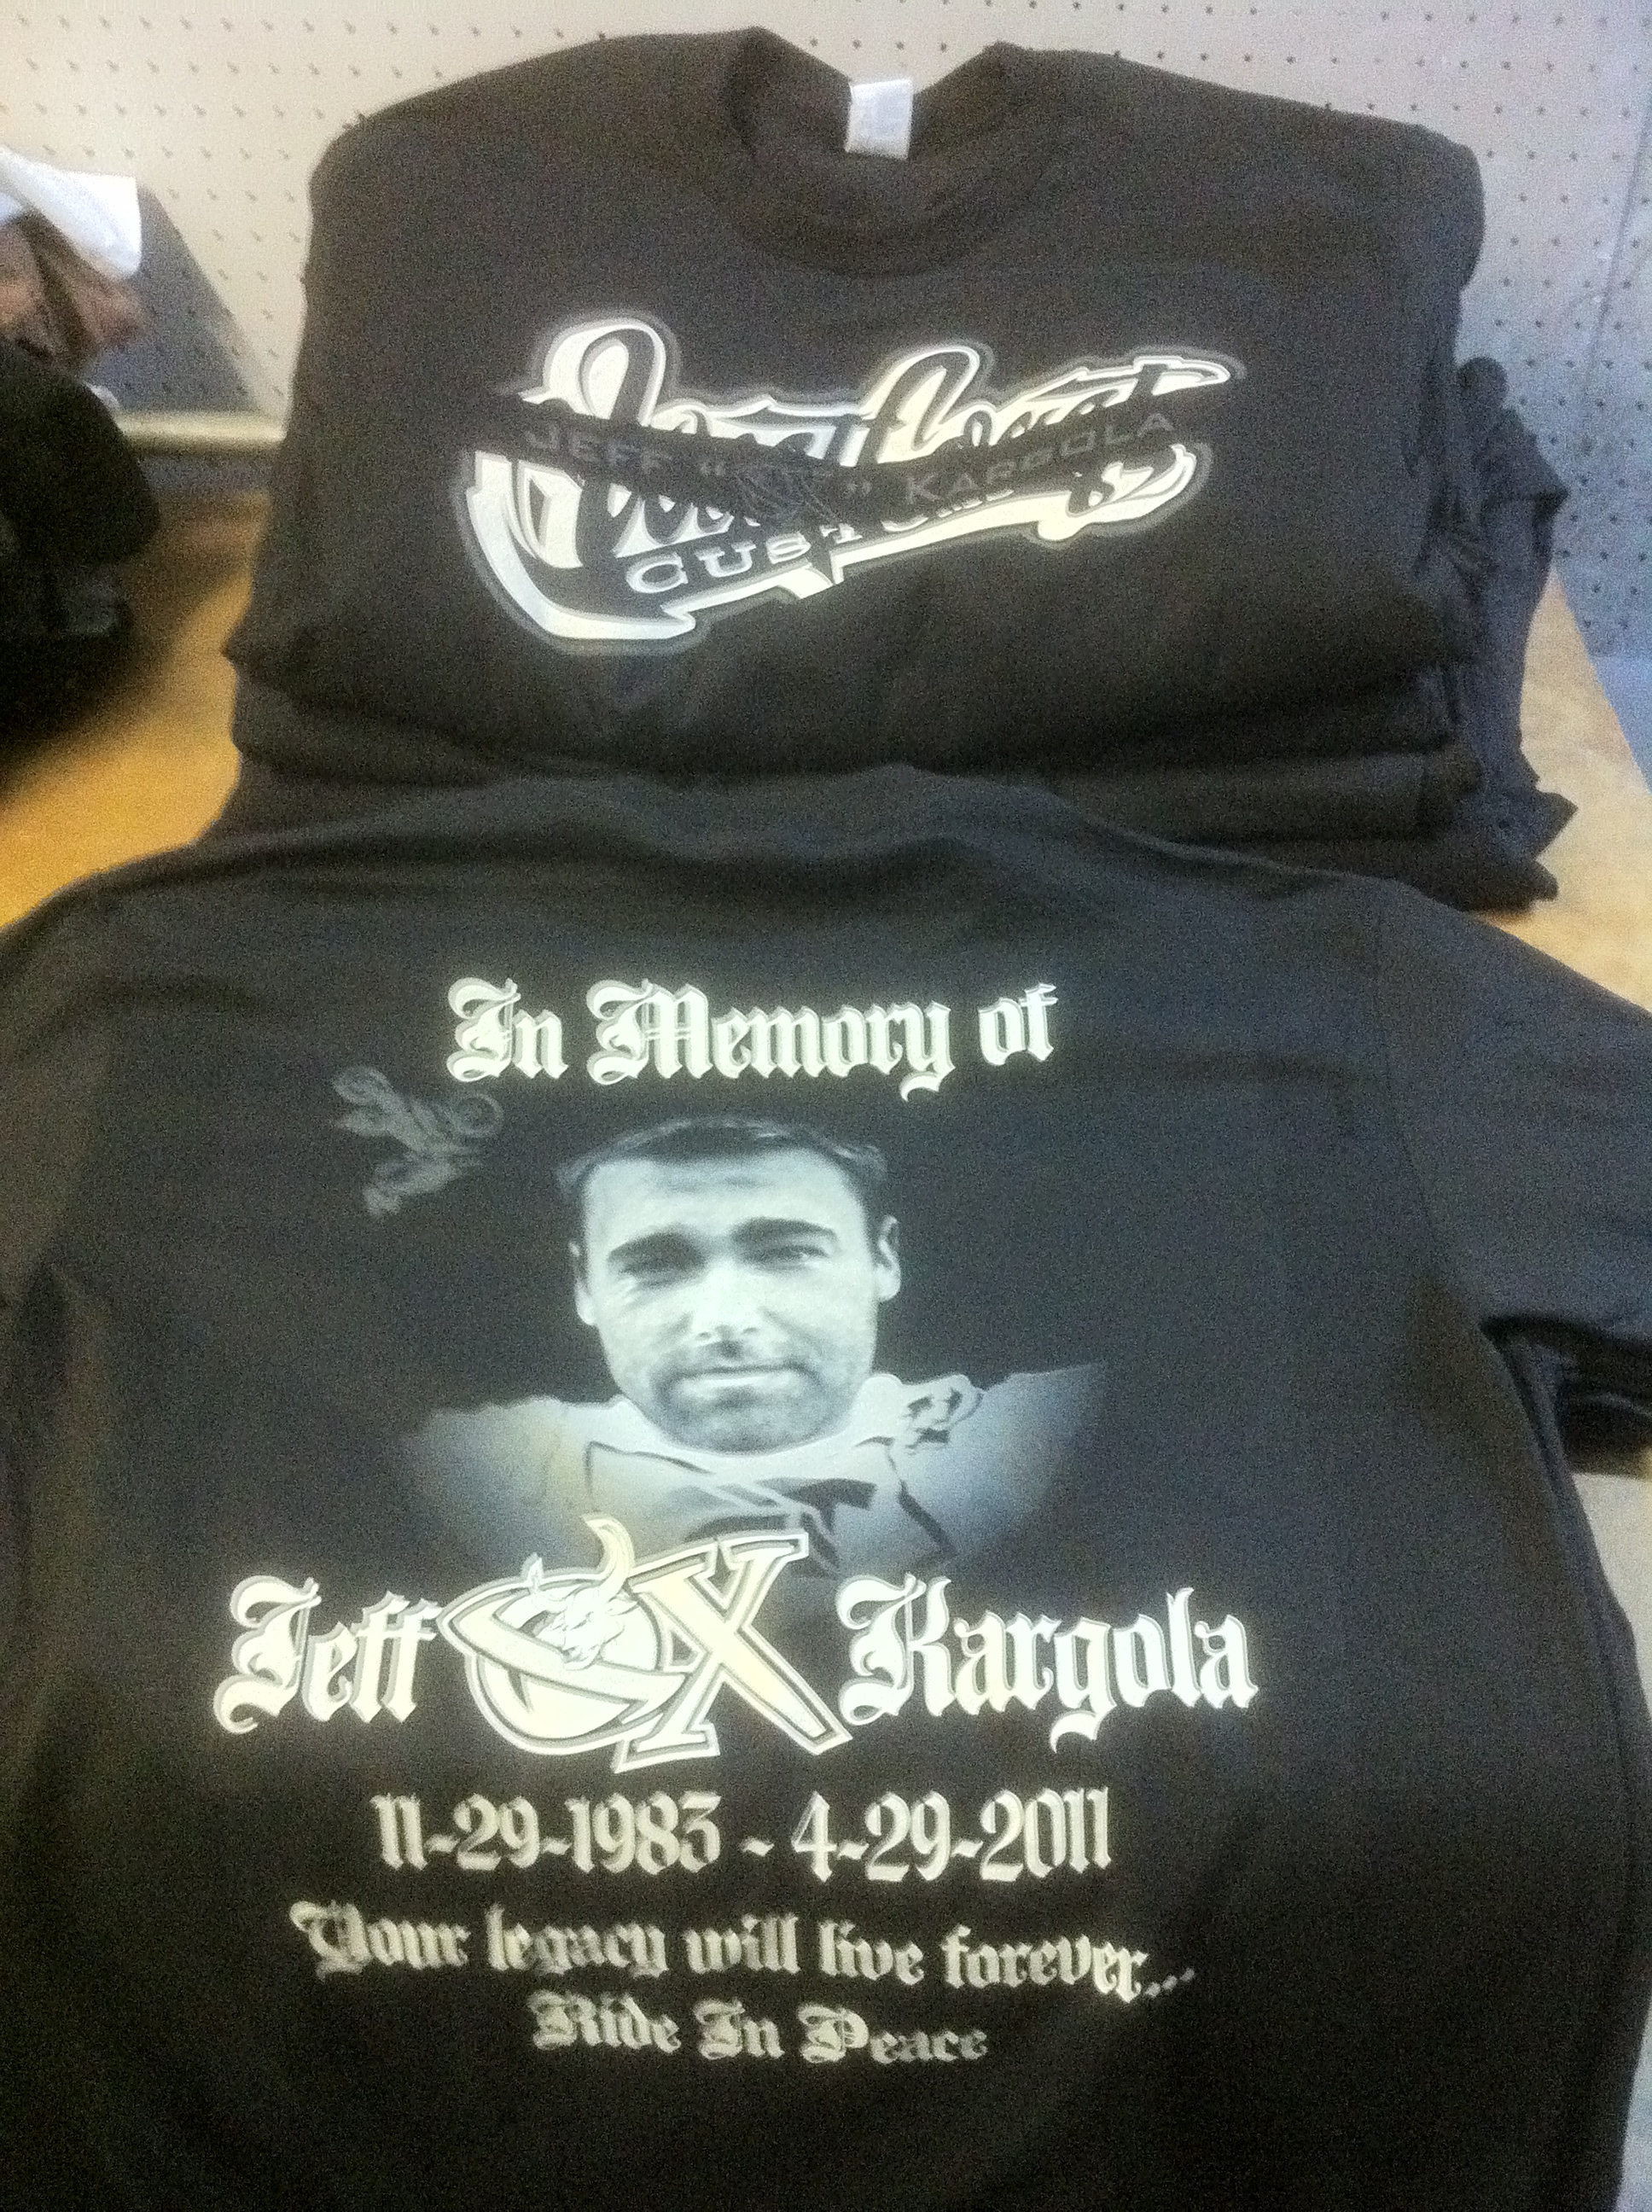 In memory shirt for the great OX